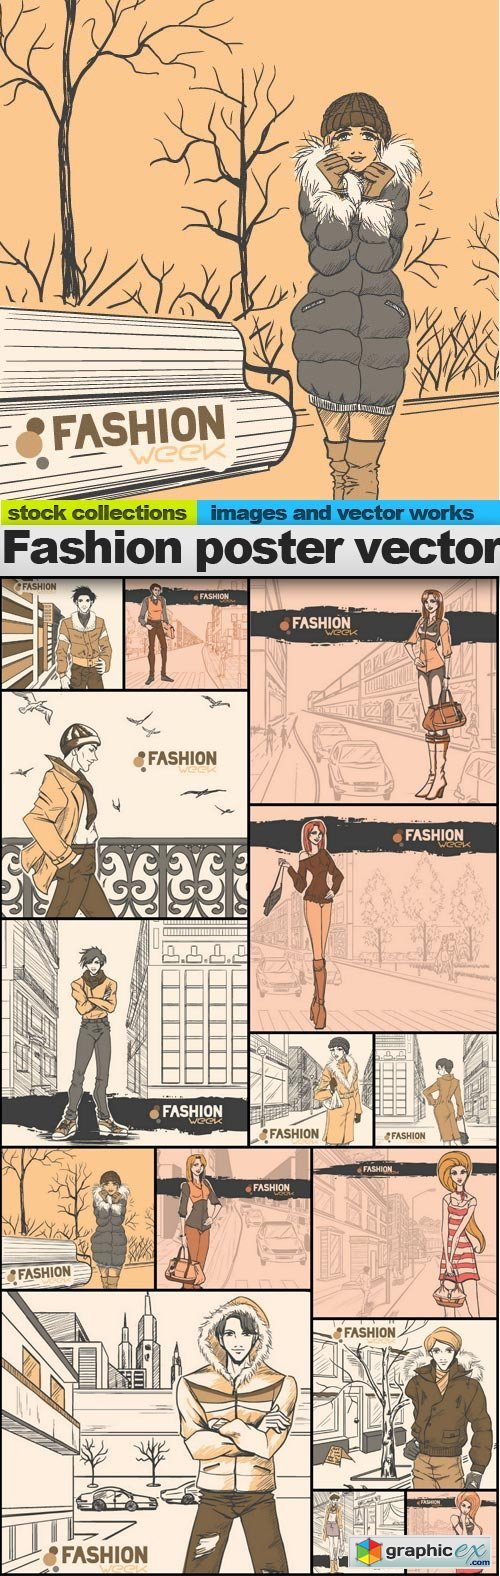 Fashion poster vector, 15 x EPS